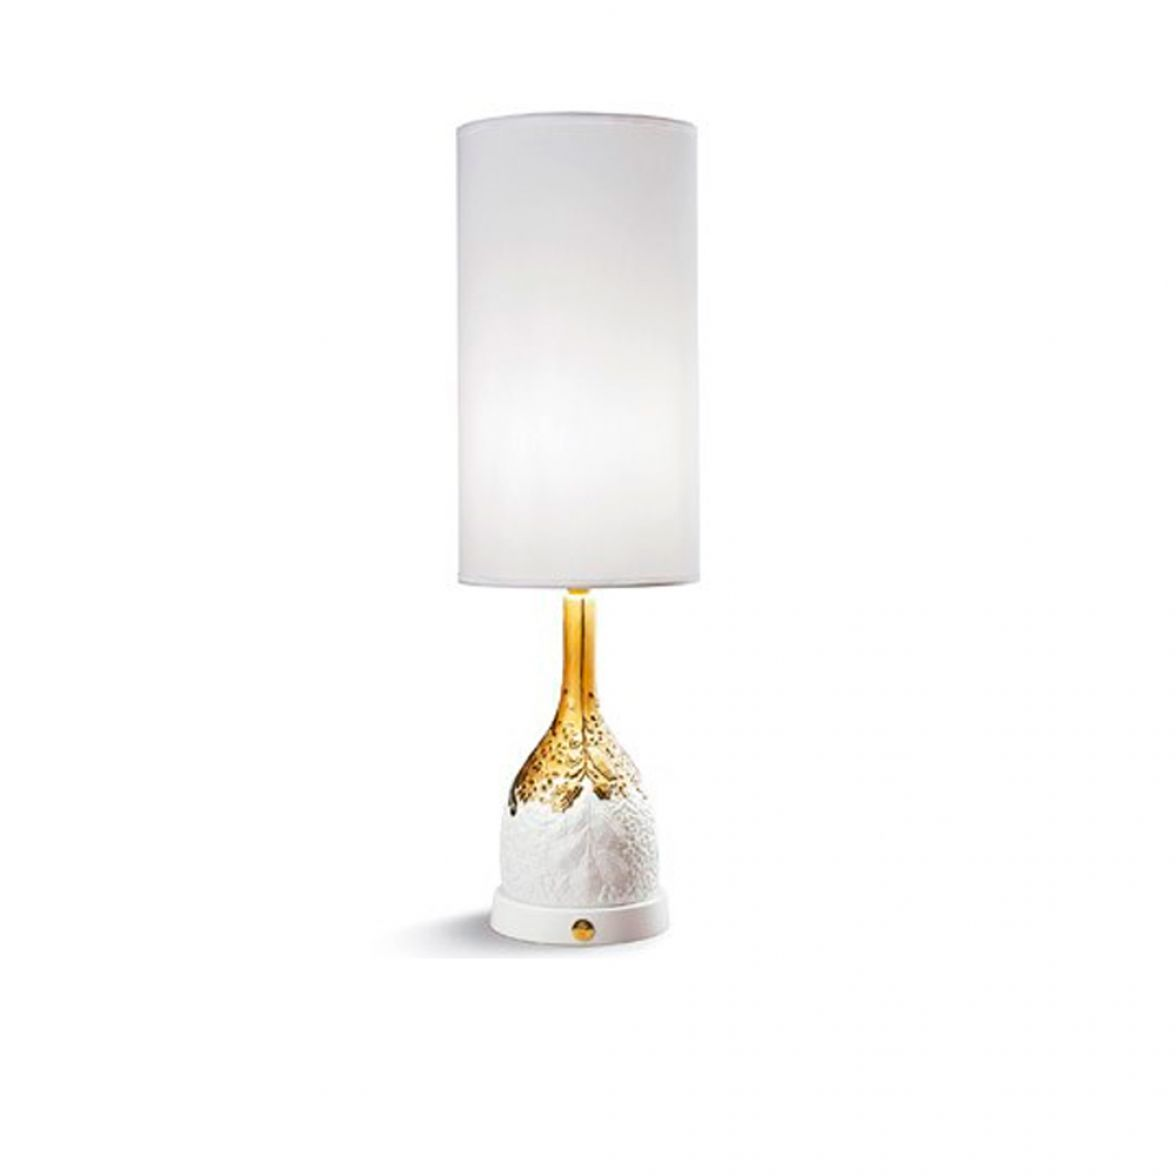 Naturo Table Lamp фото цена